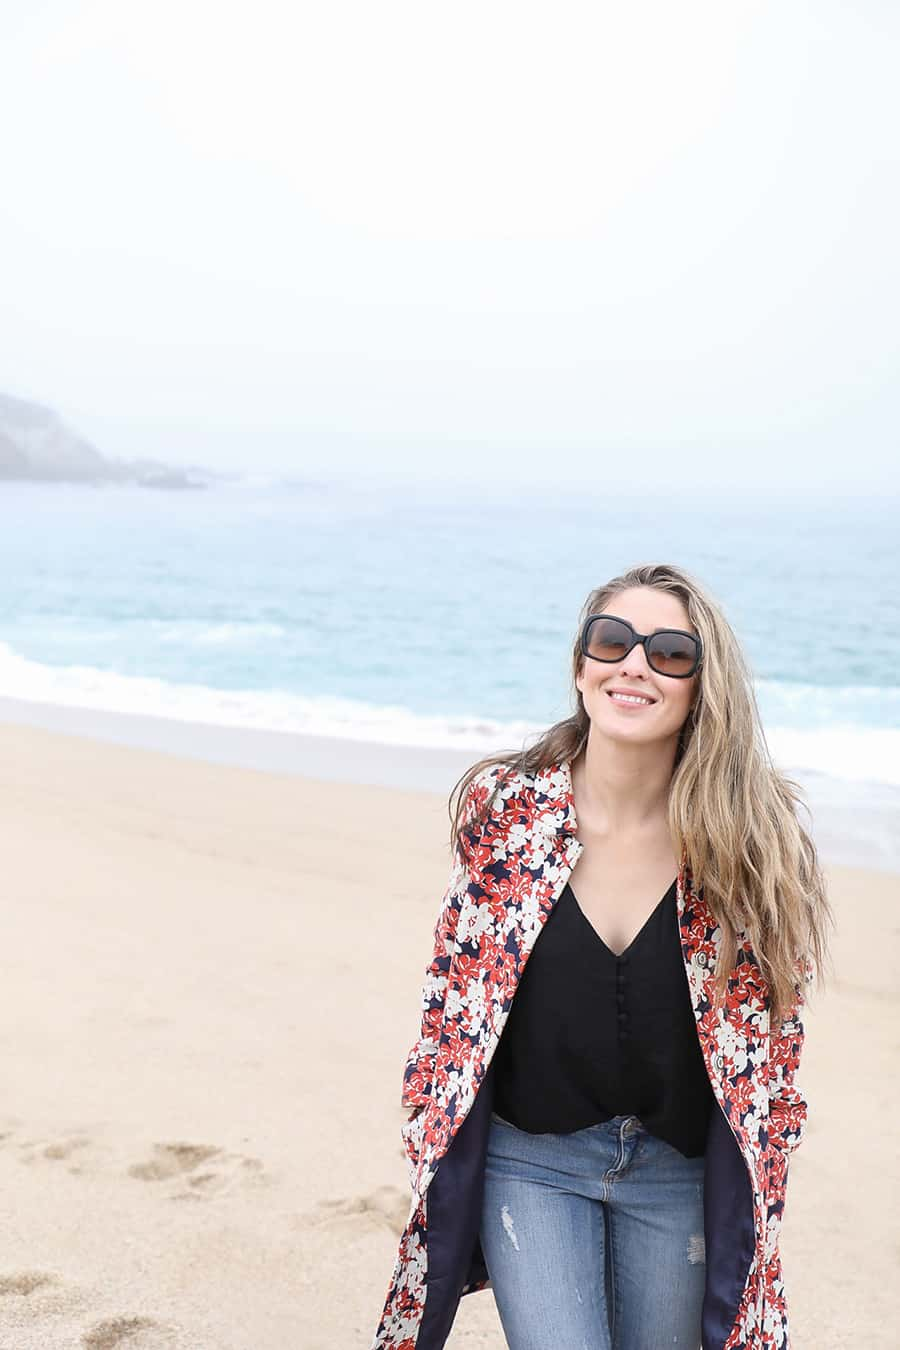 Eden Passante on the beach in Carmel by the Sea